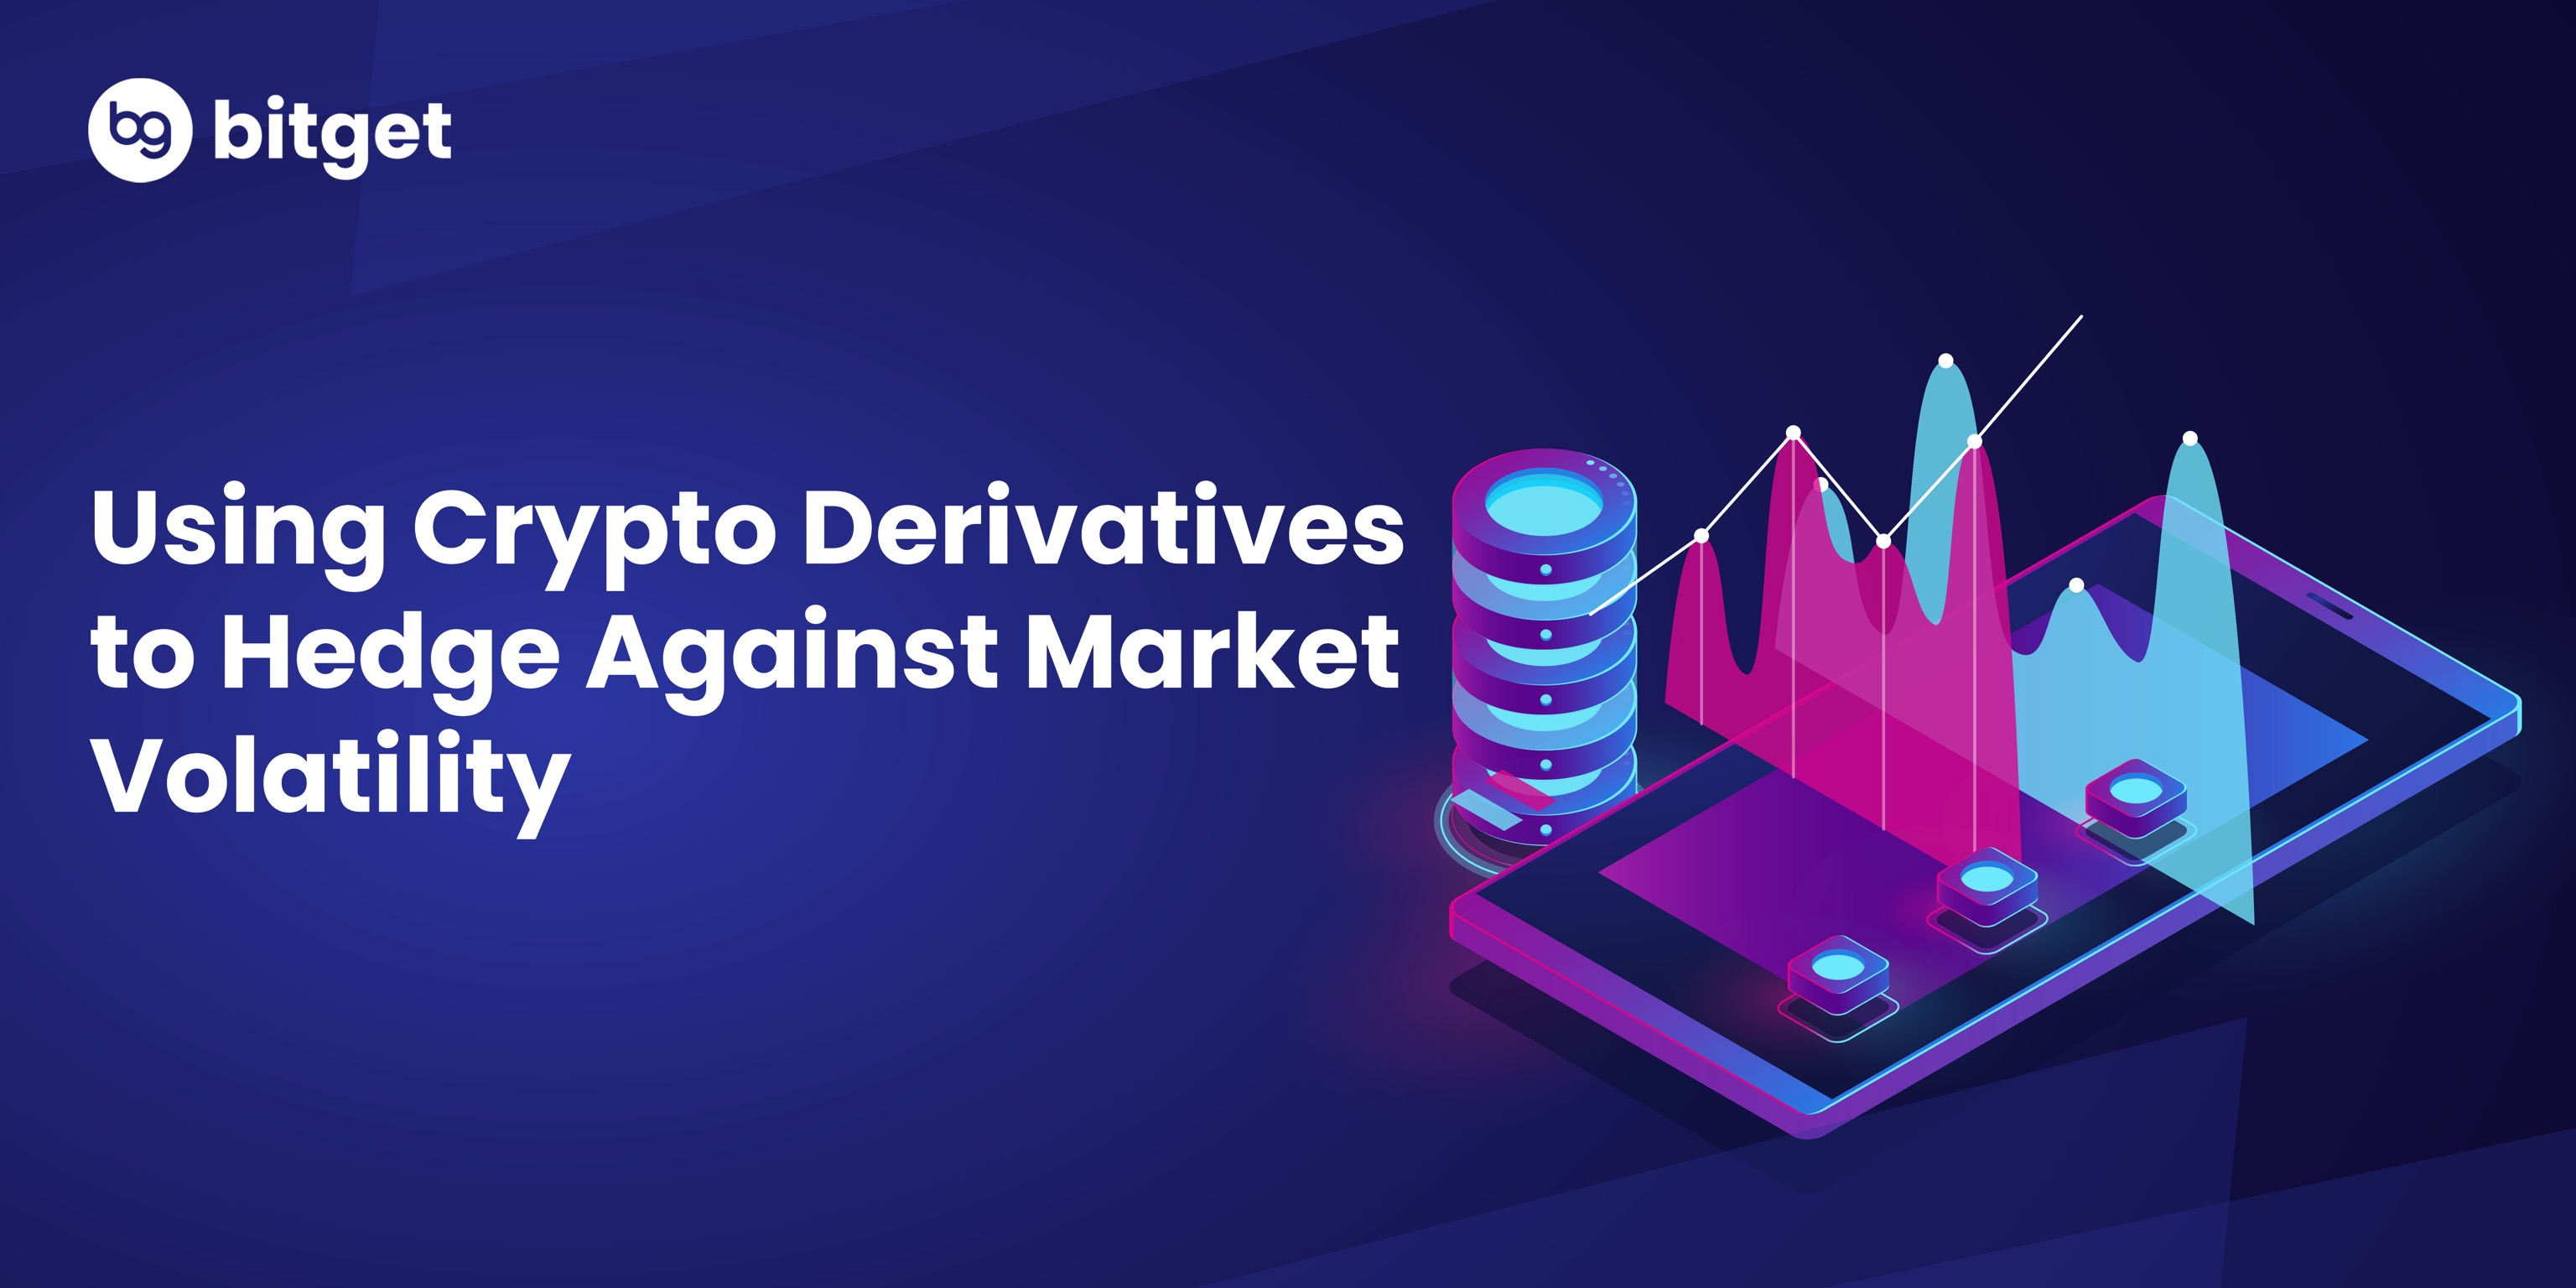 How to Use Crypto Derivatives to Hedge Against Market Volatility